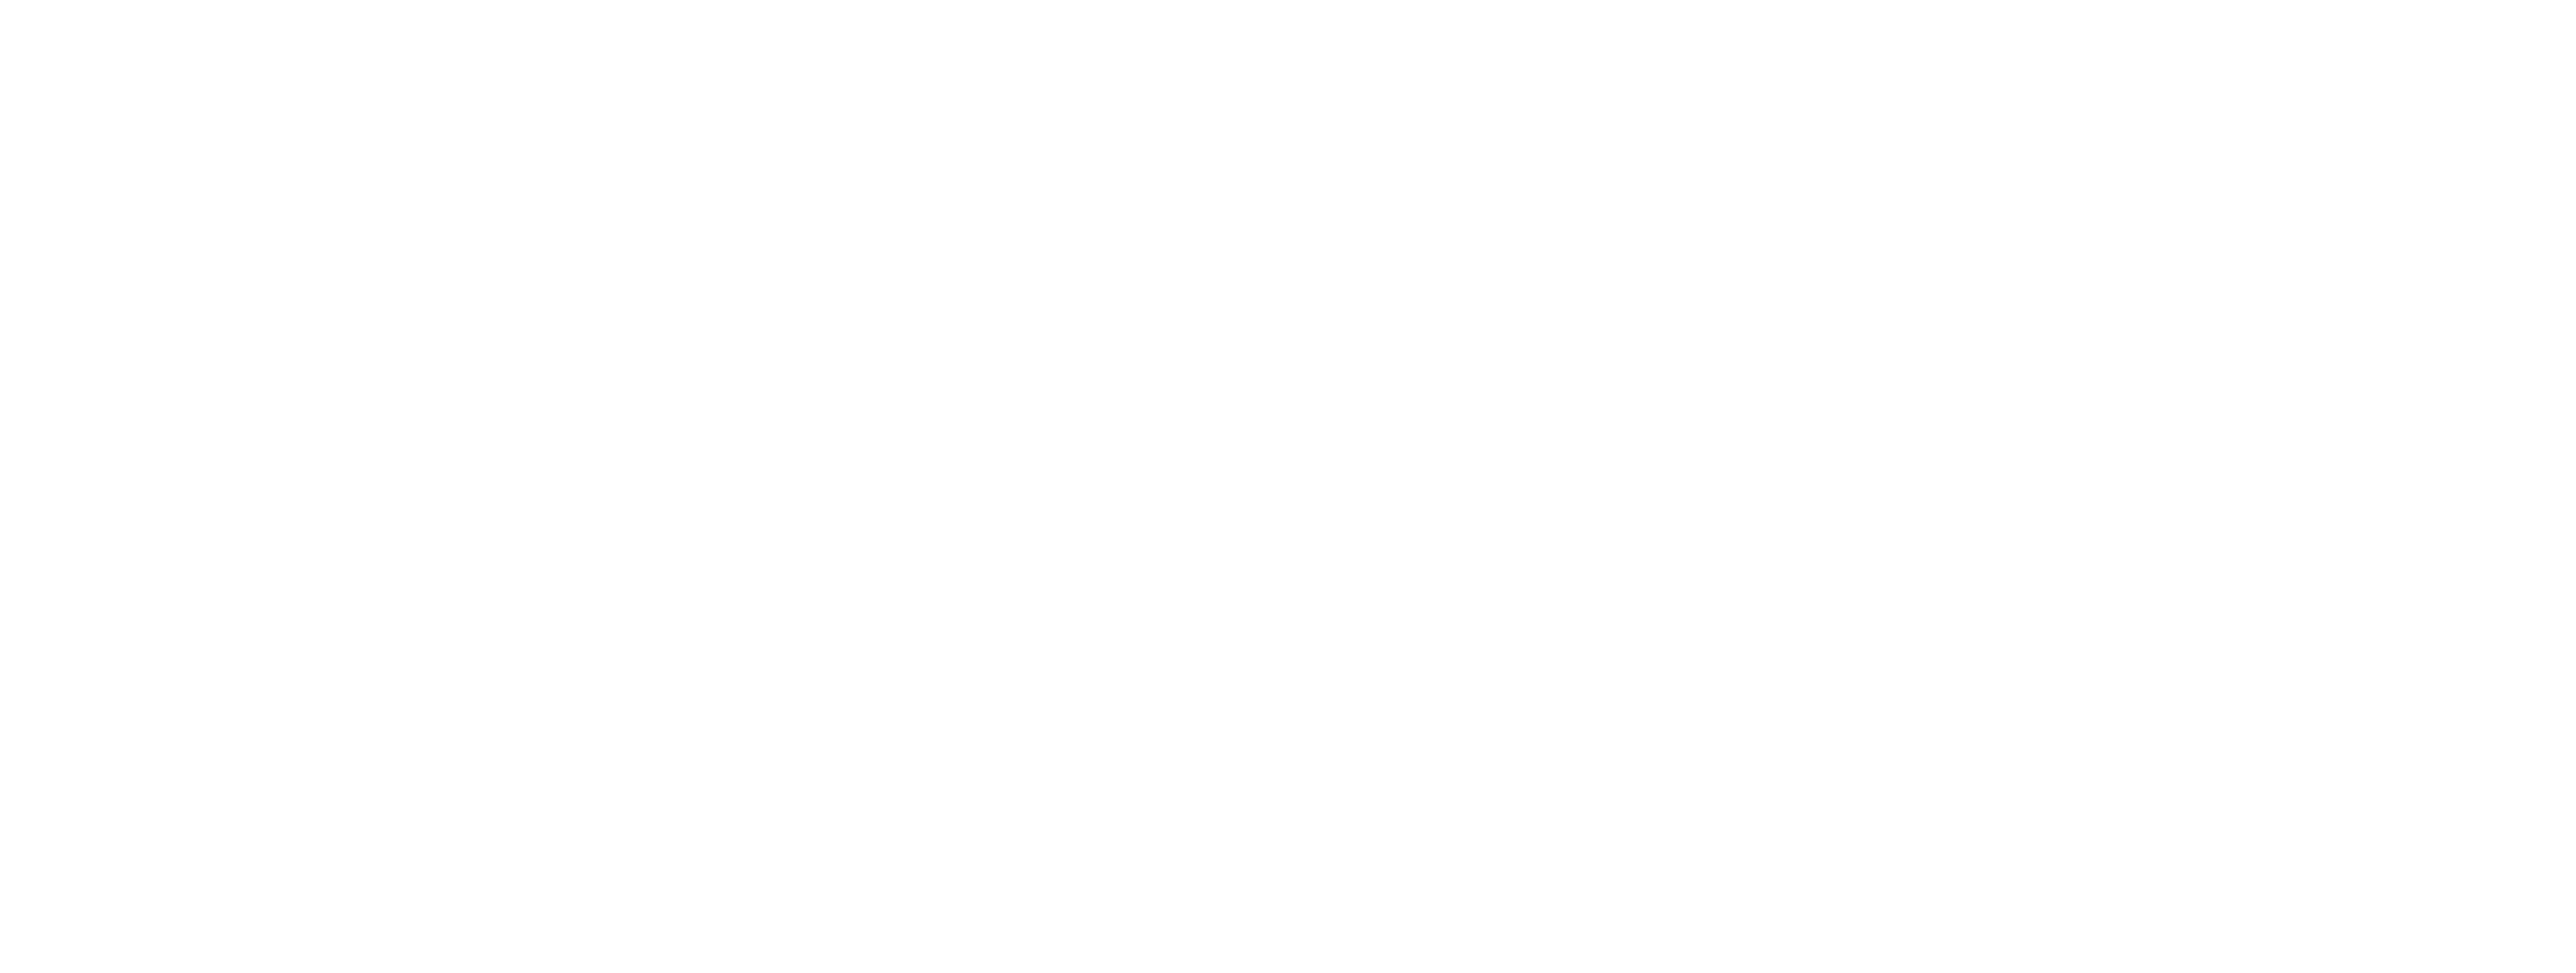 Forman Consulting Services